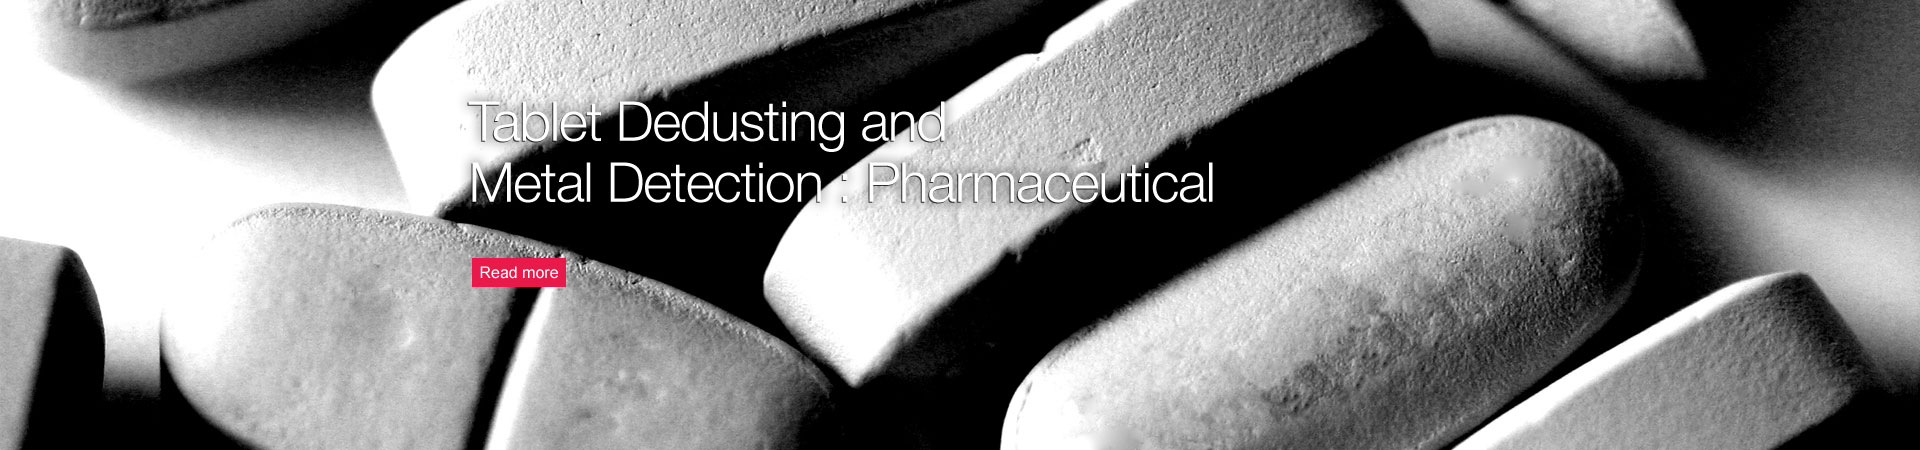 Tablet Dedusting and Metal Detection: Pharmaceutical